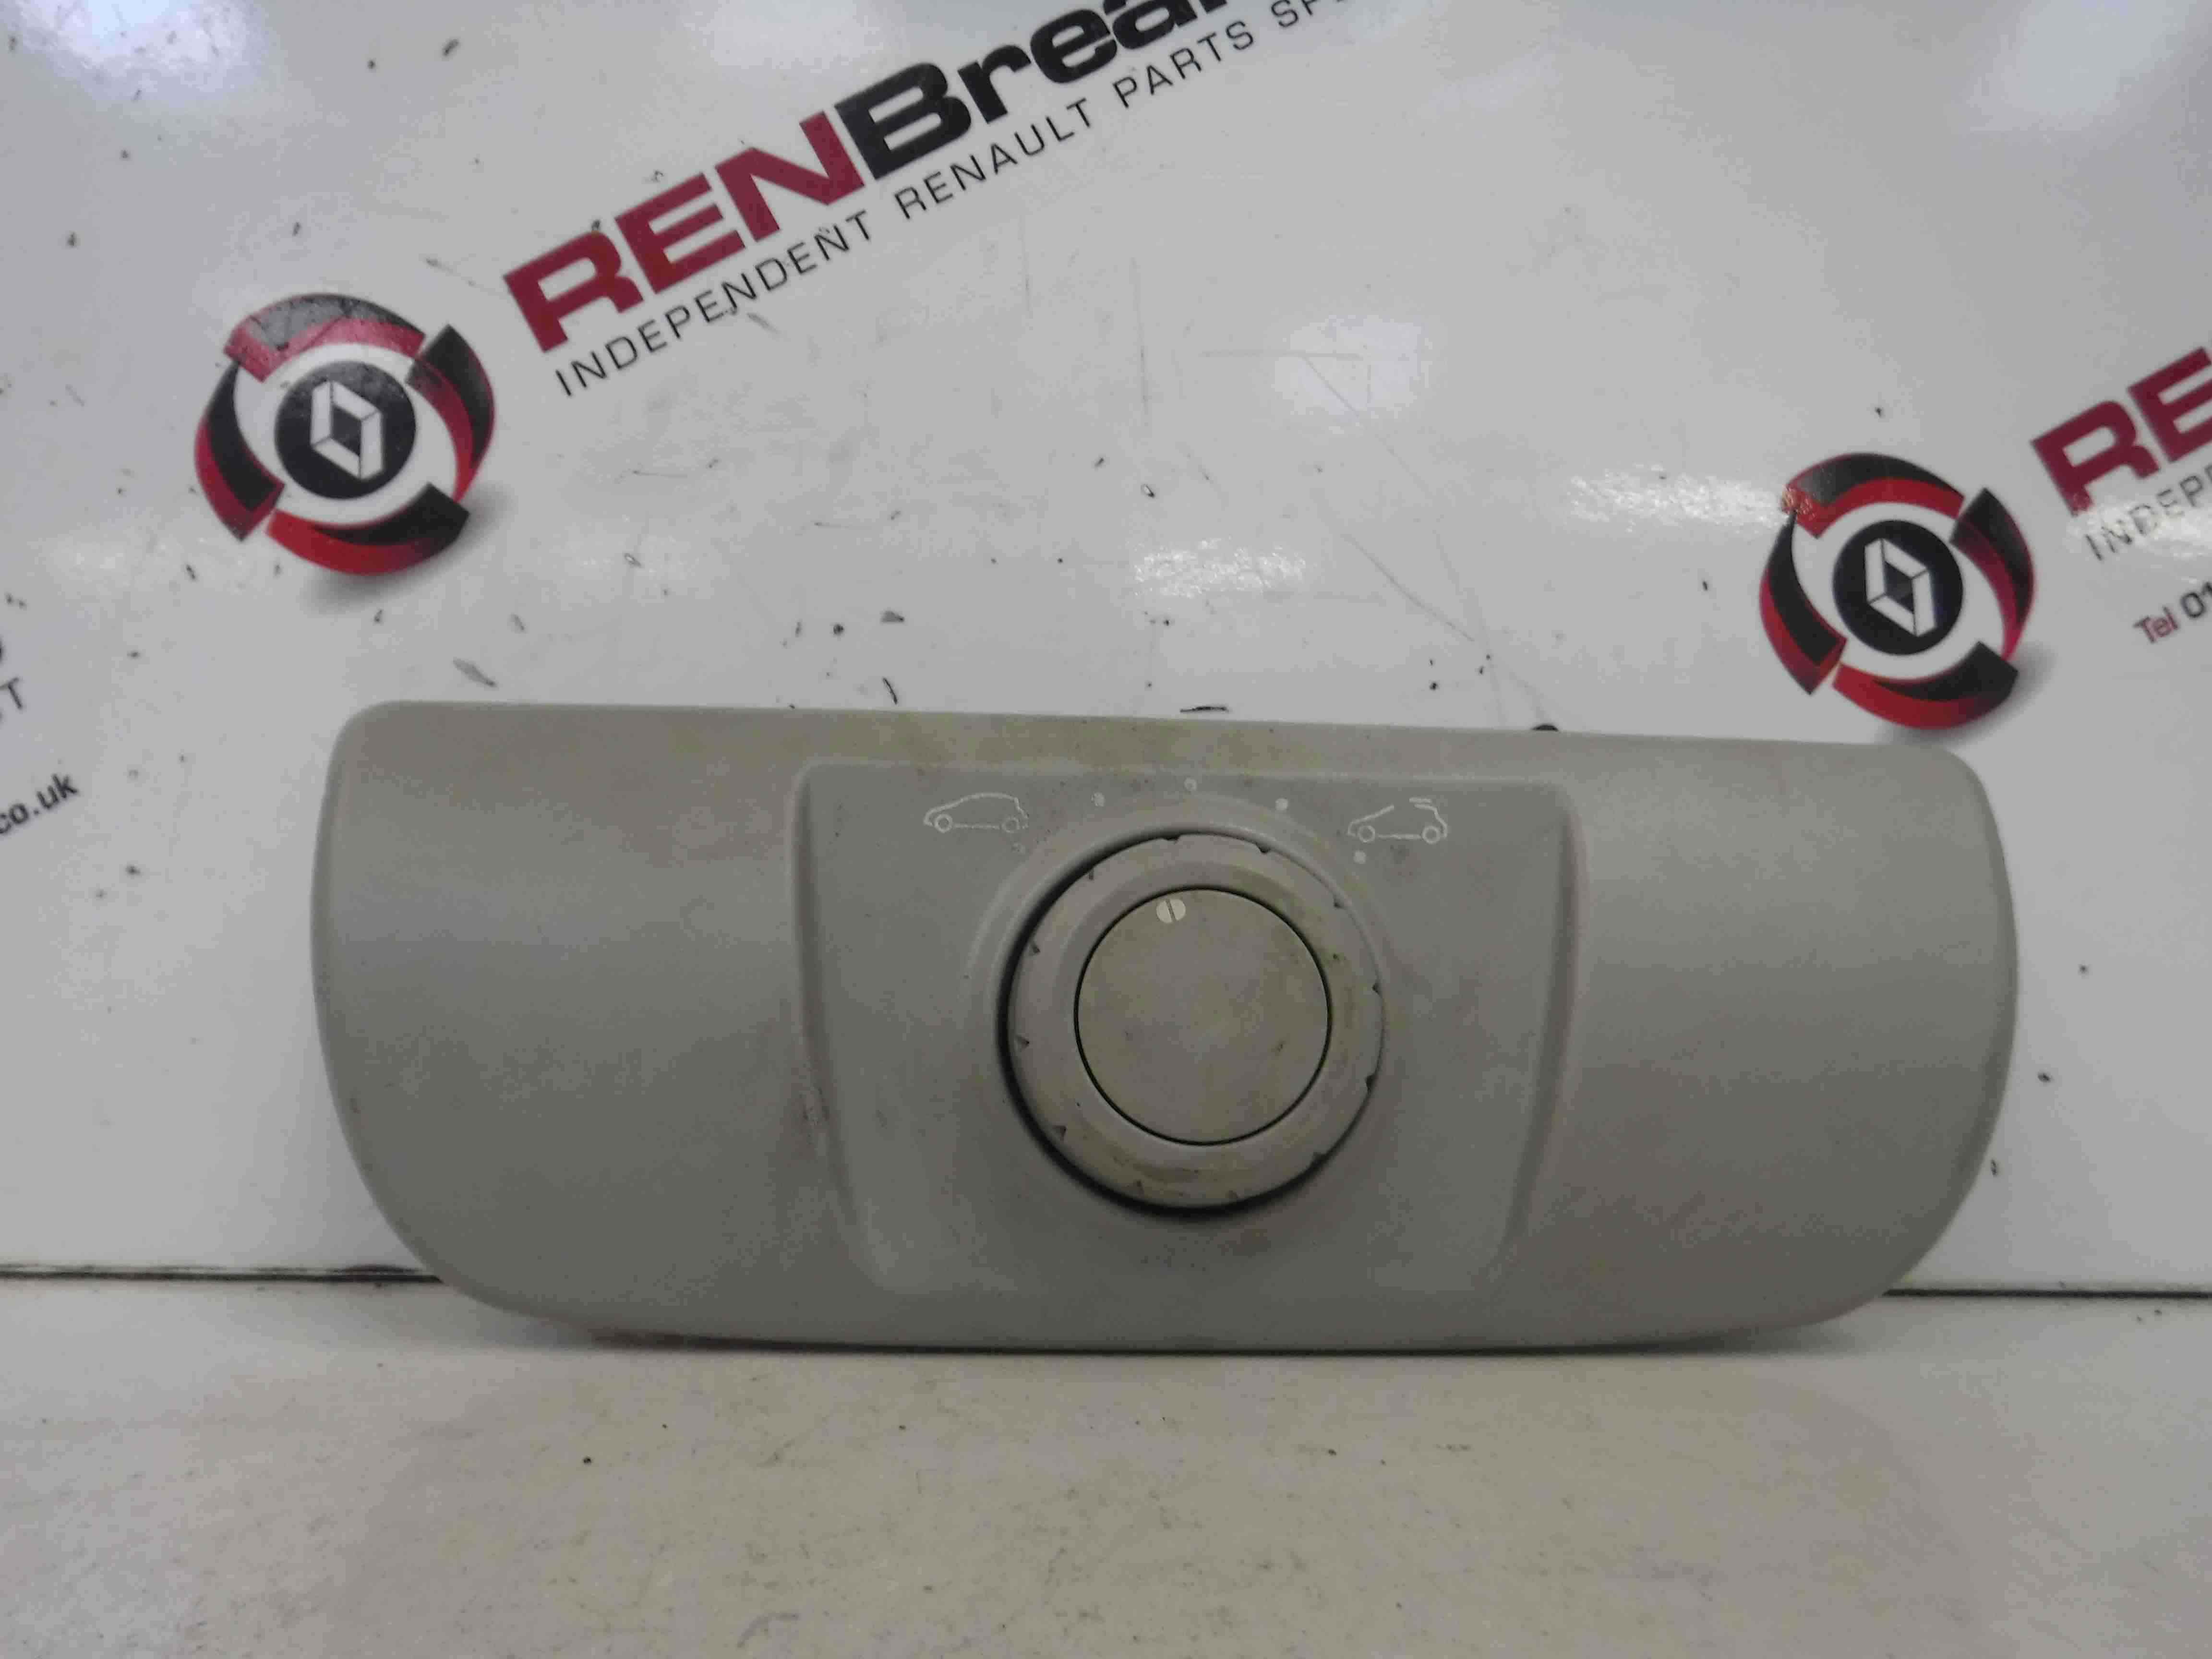 Renault Megane + Scenic 2003-2009 Electric Sunroof Switch Button Panel